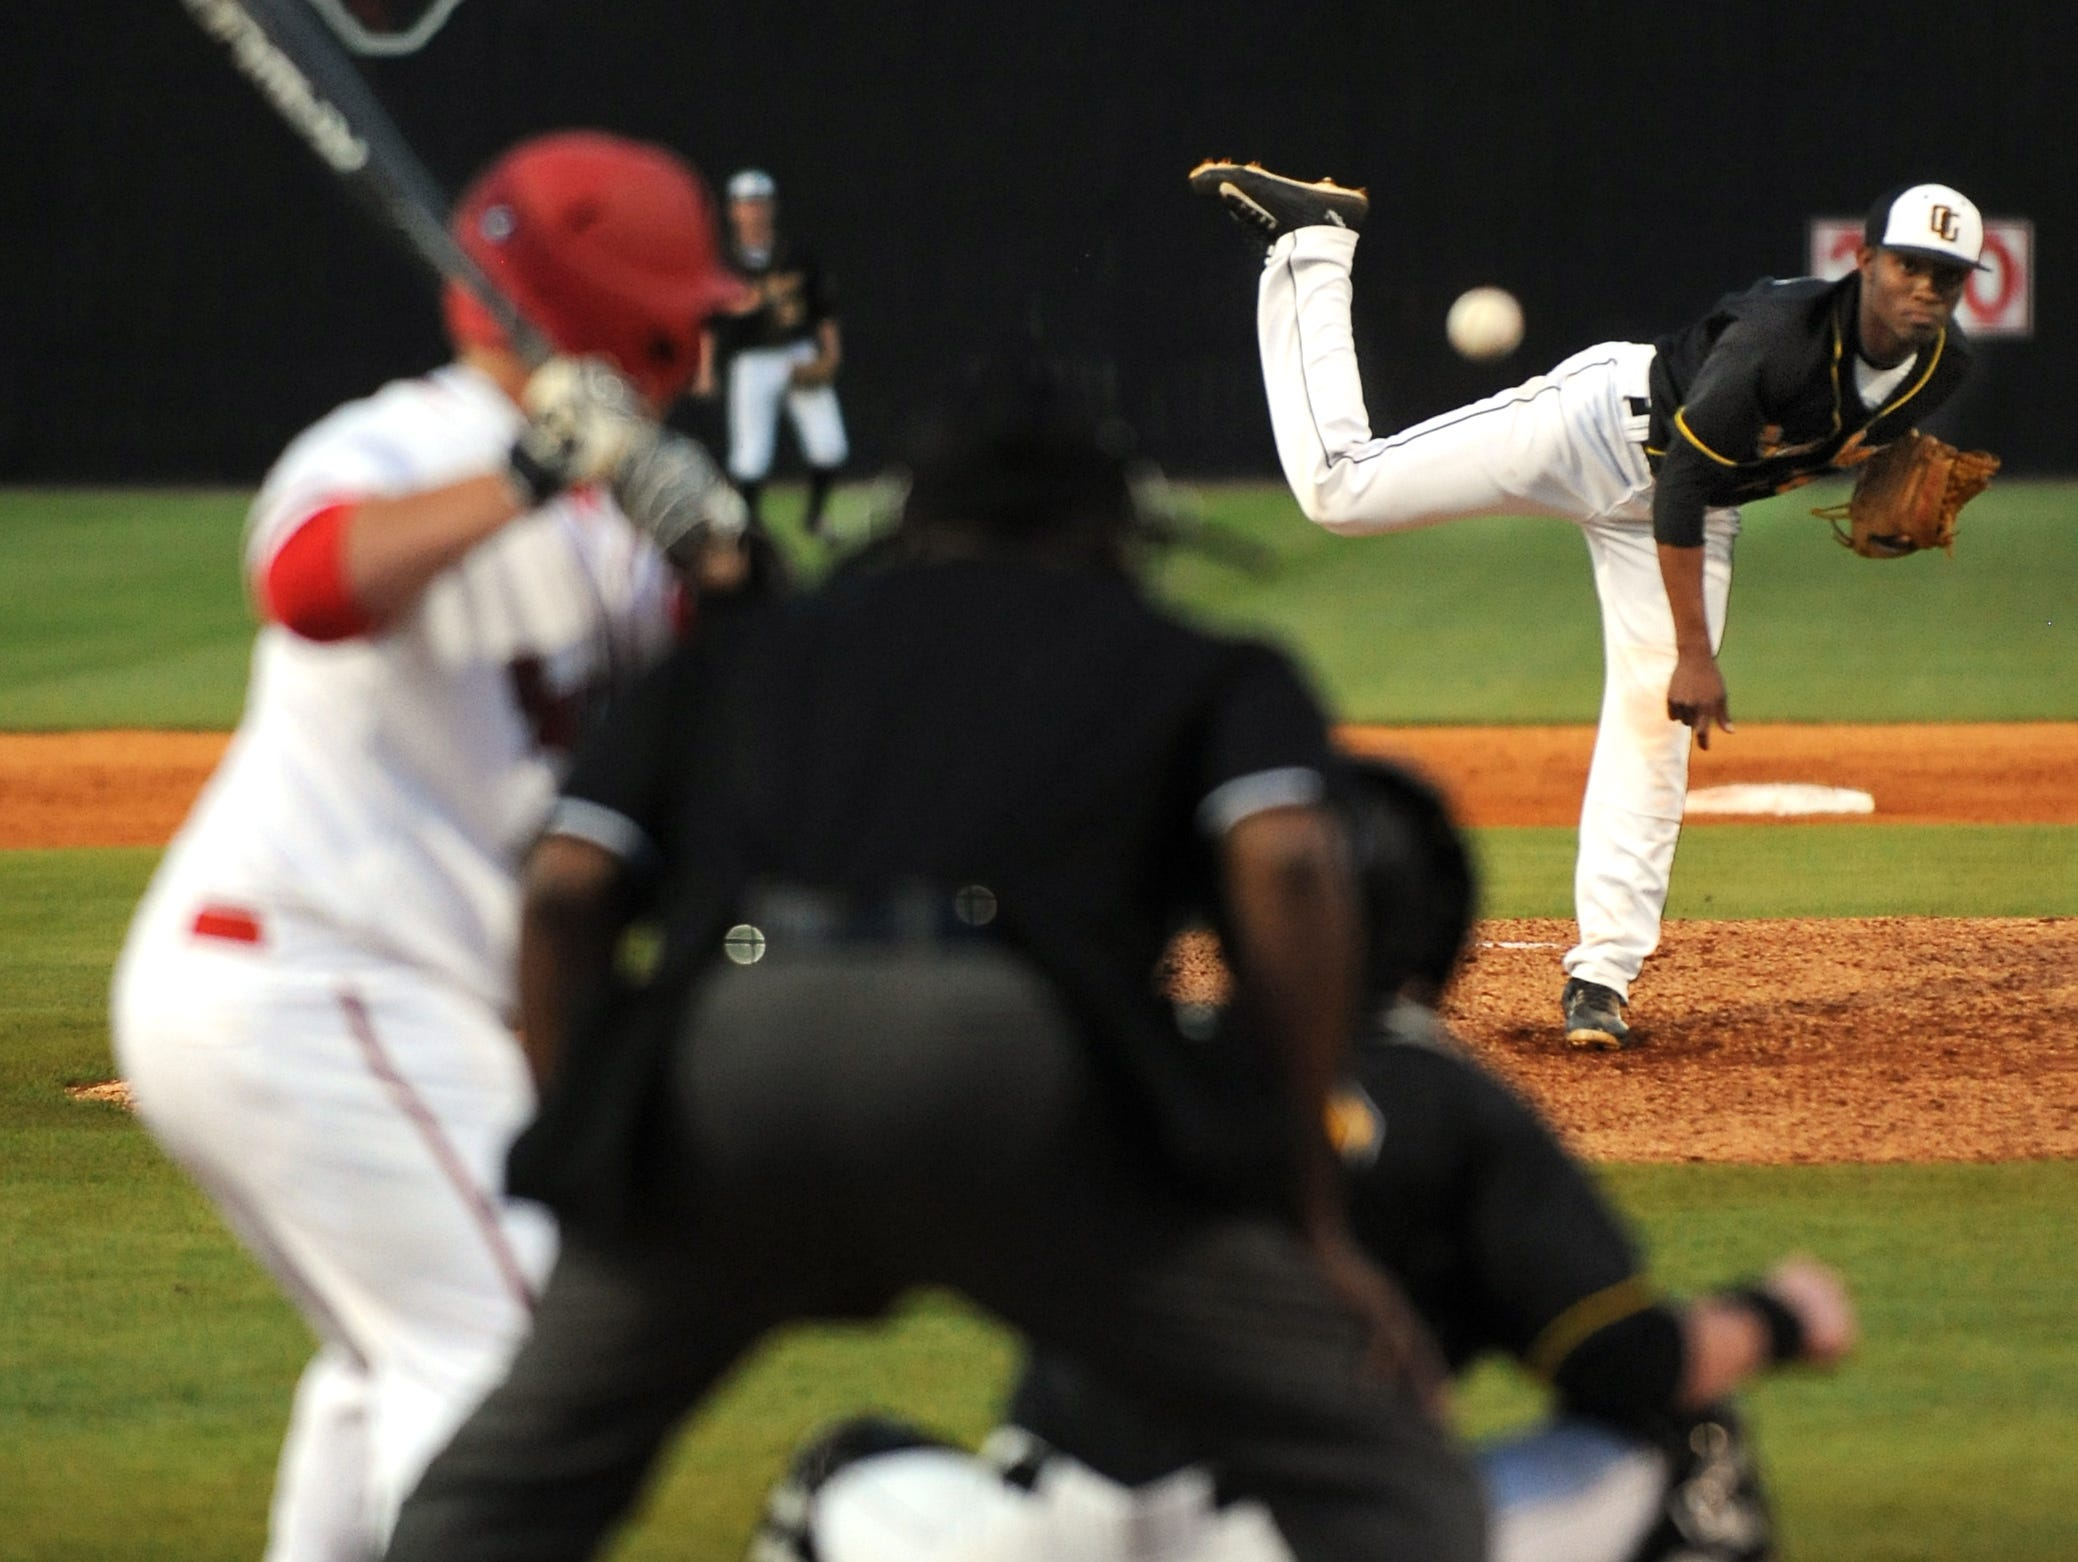 Oak Grove pitcher J.C. Keys (16) delivers a pitch Tuesday during the Warriors' game against the Petal Panthers at Petal High School.